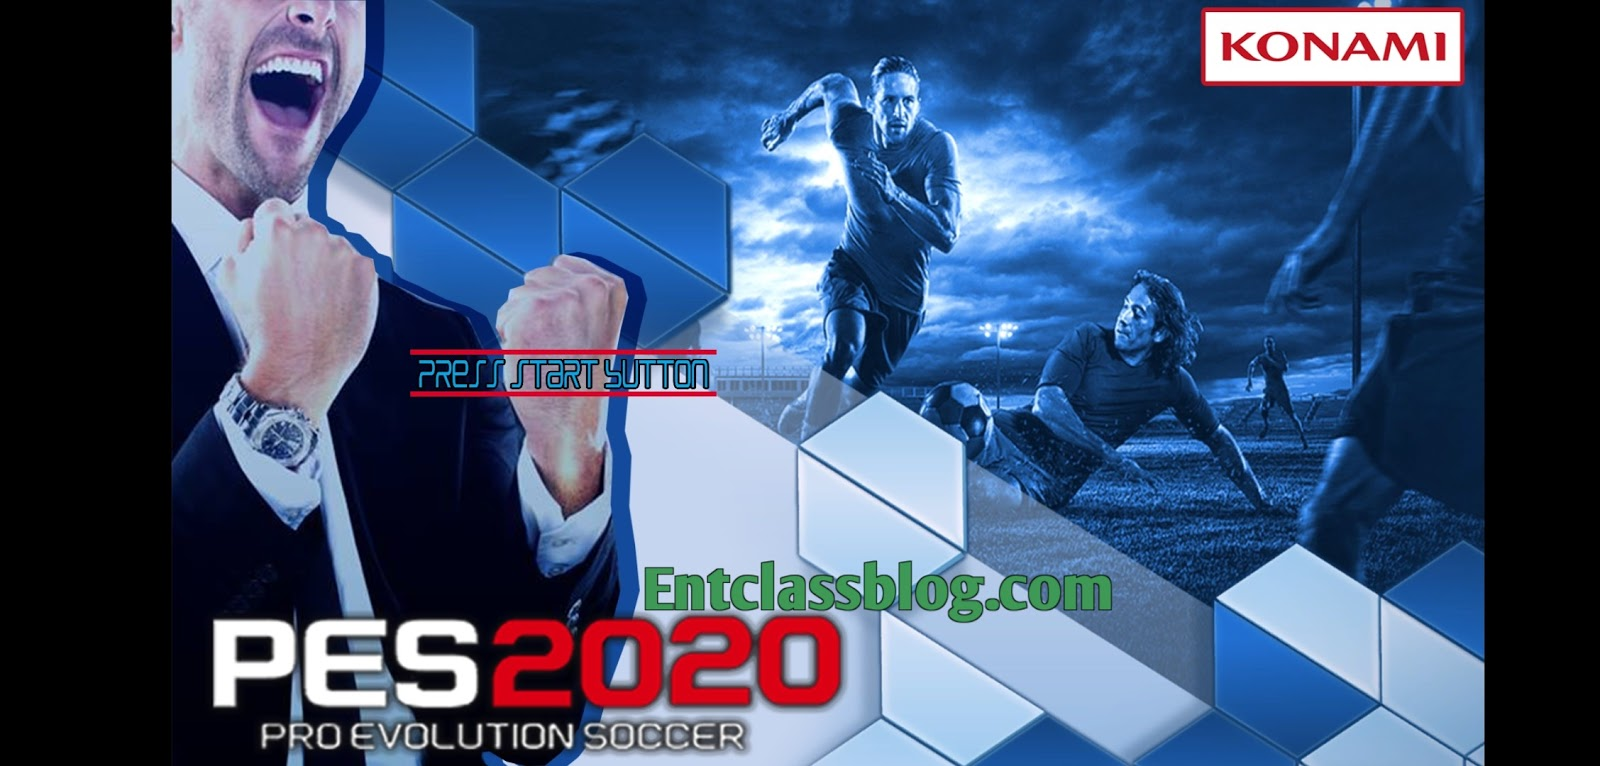 ⭐ Download file game ppsspp pes iso | PES 2019 iso ppsspp Download